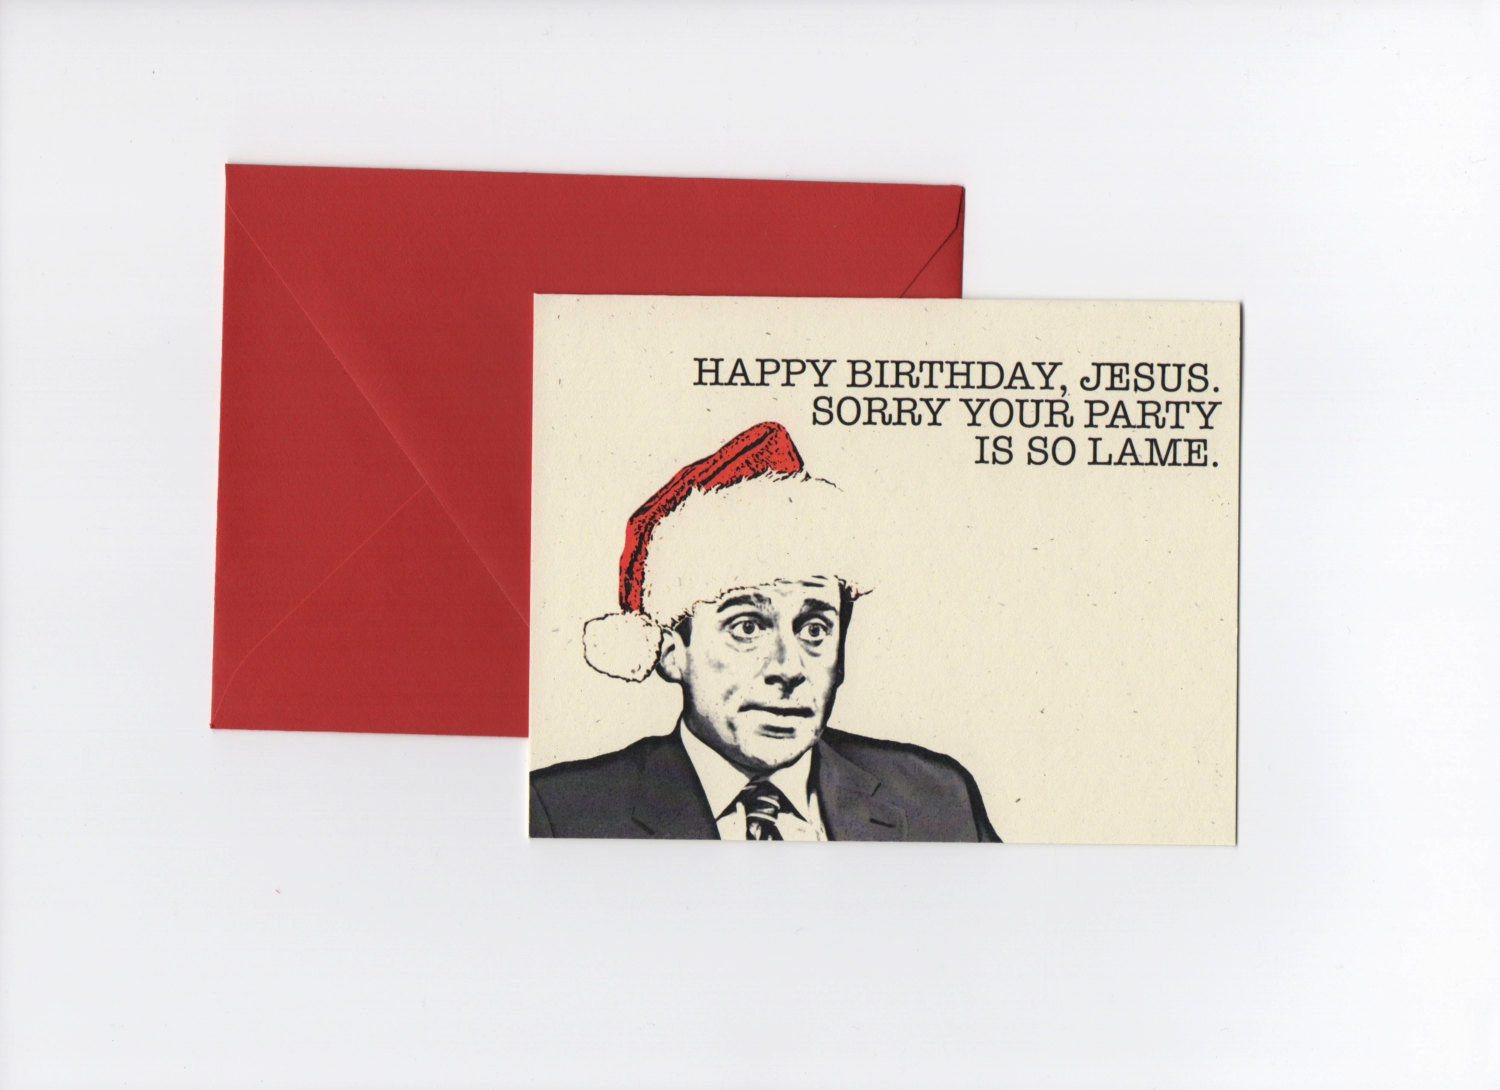 office birthday card quotes ; the-office-birthday-cards-lovely-happy-birthday-jesus-michael-scott-the-fice-christmas-of-the-office-birthday-cards